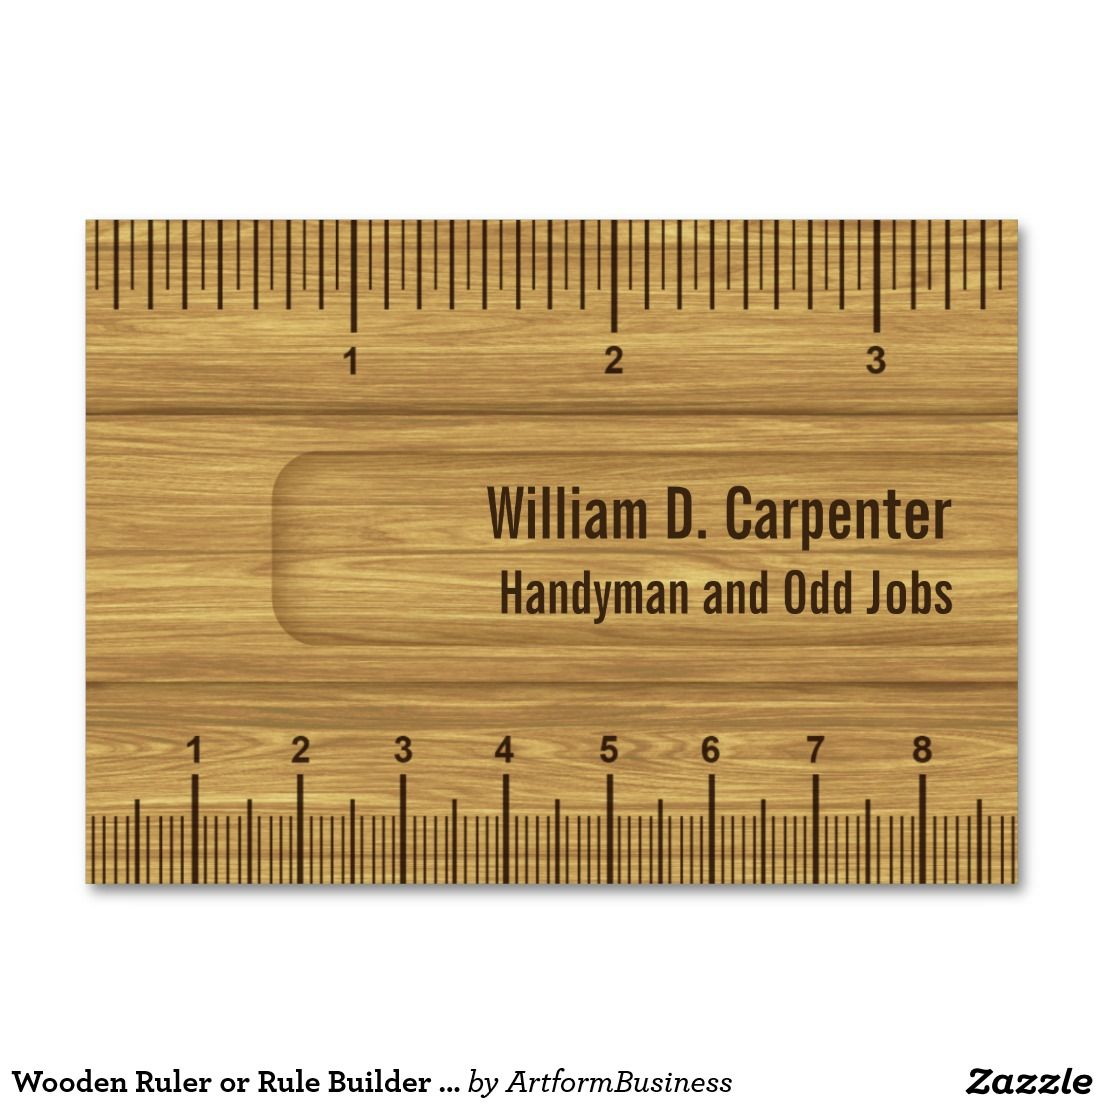 Wooden Ruler or Rule Builder or Carpenter Large Business Cards ...